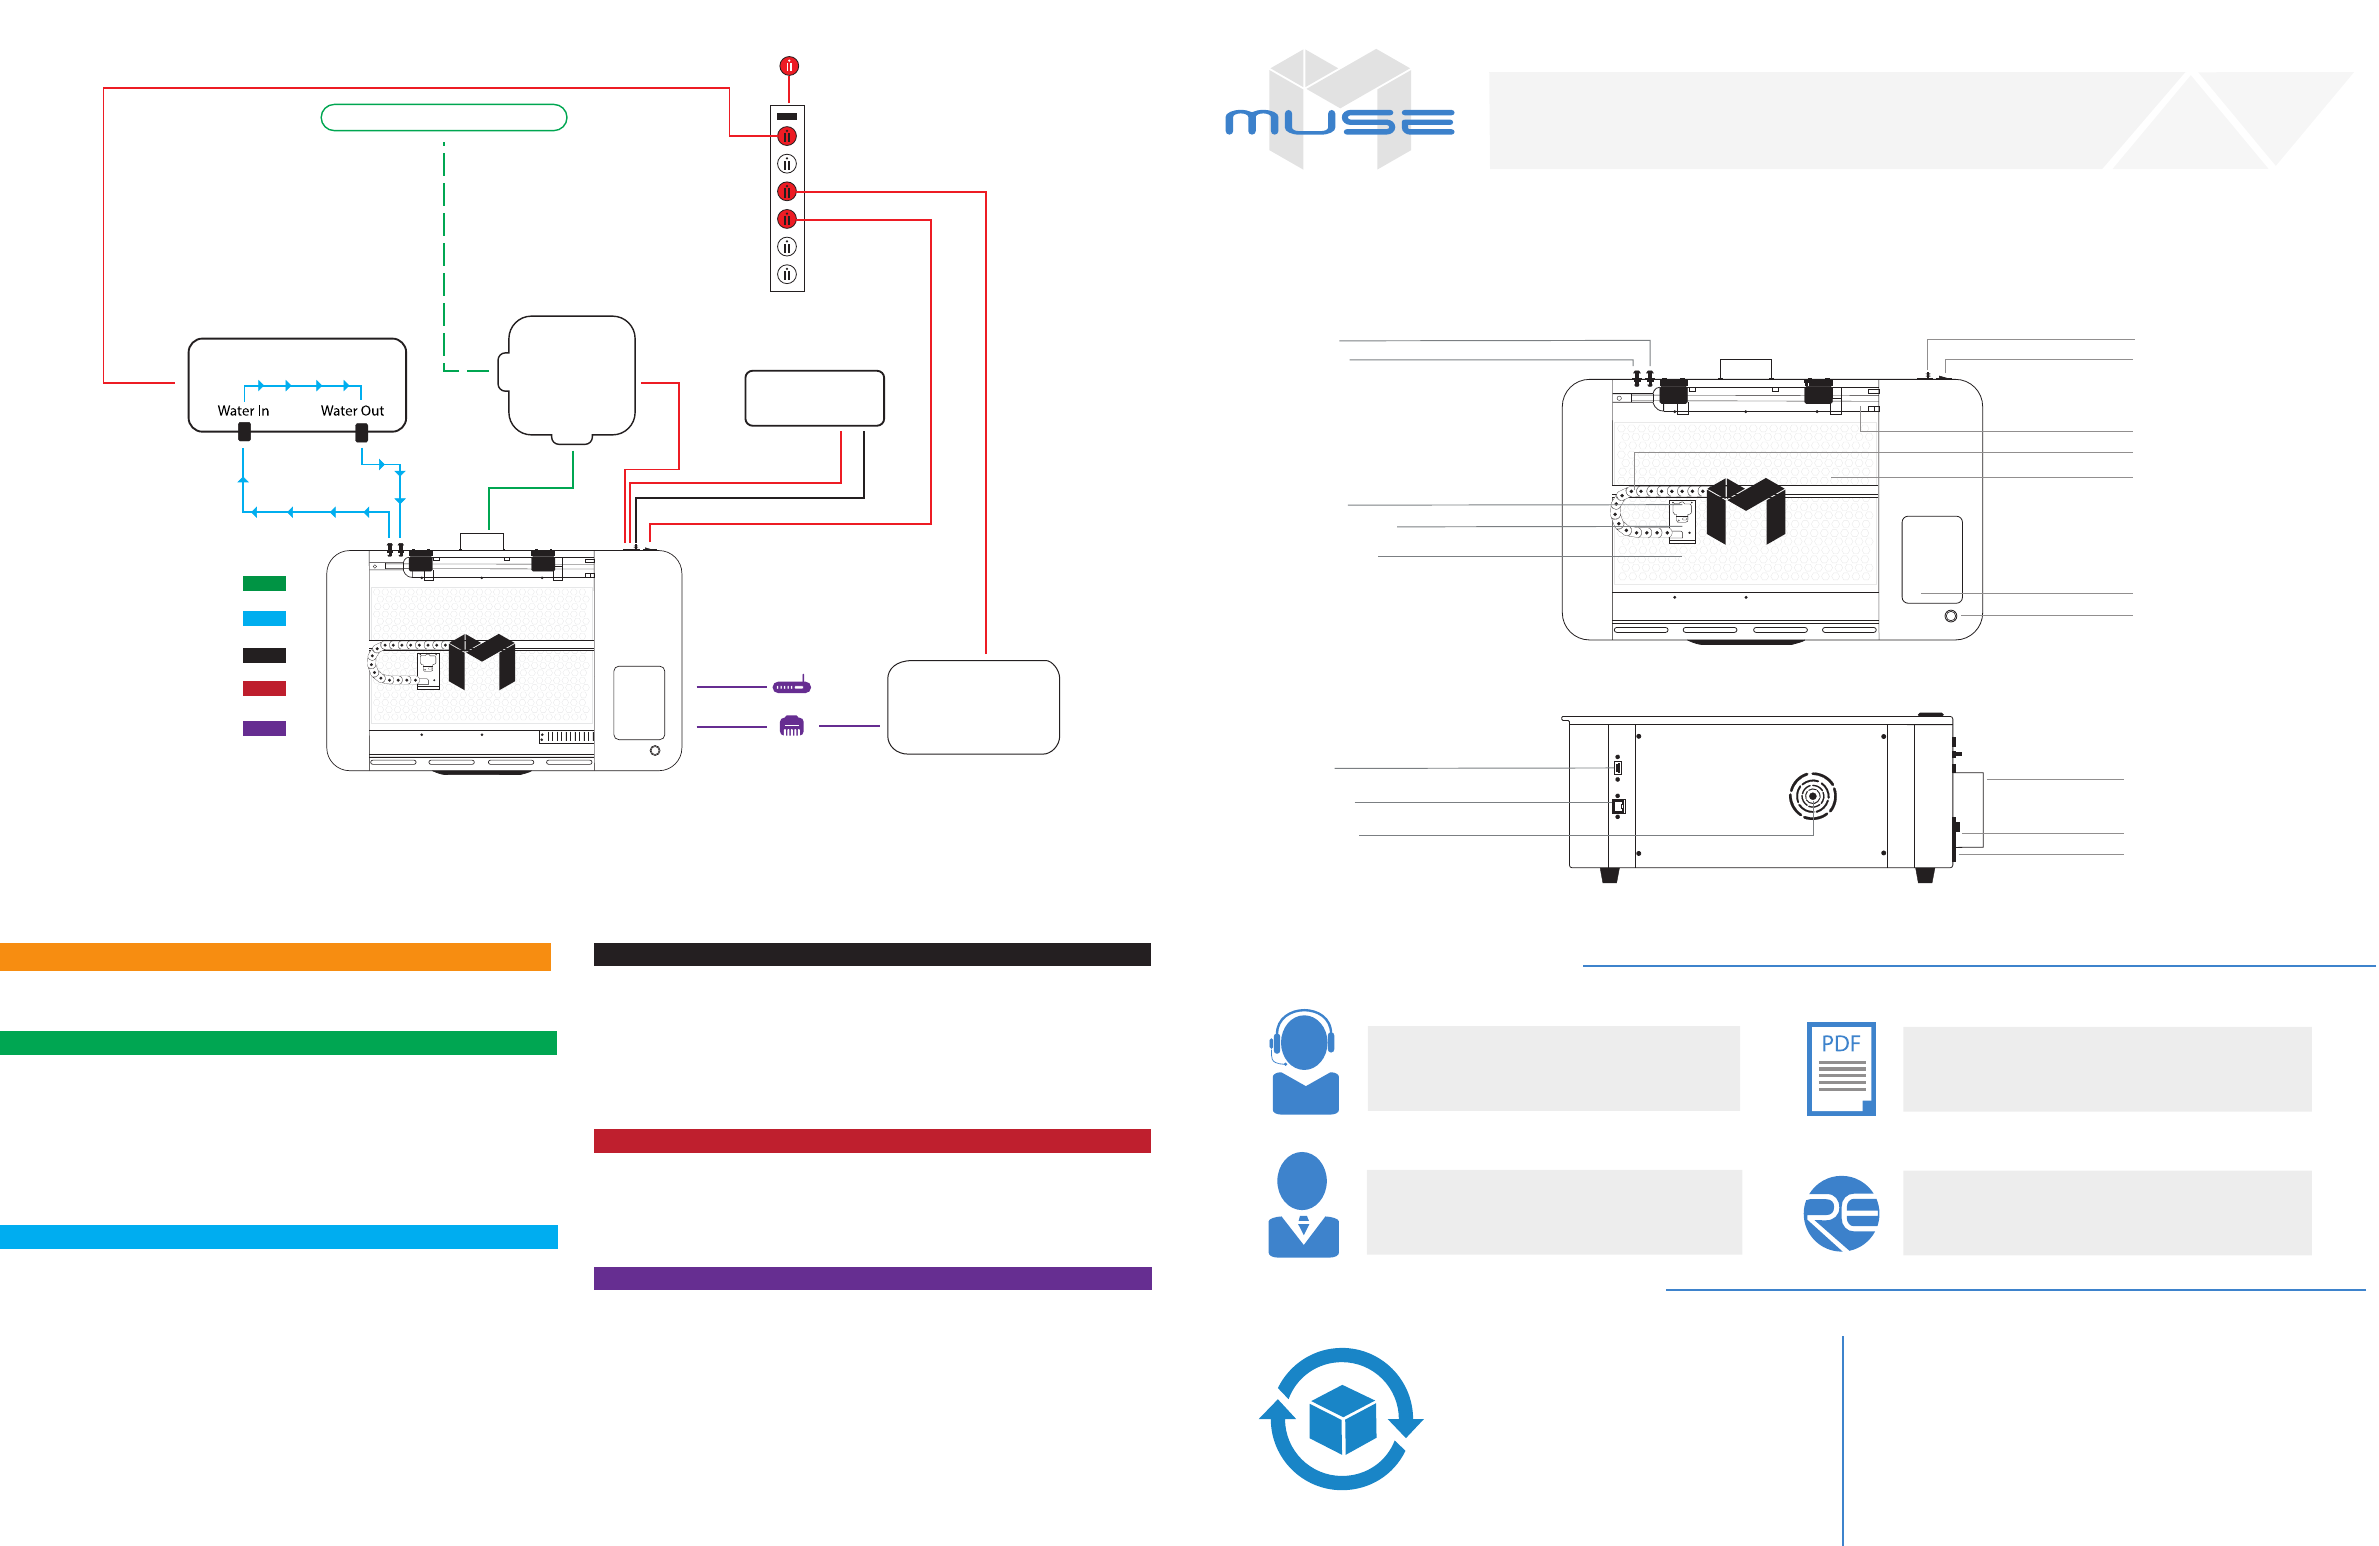 Remarkable Fsl Muse Quickstart User Manual Wiring Cloud Hisonuggs Outletorg